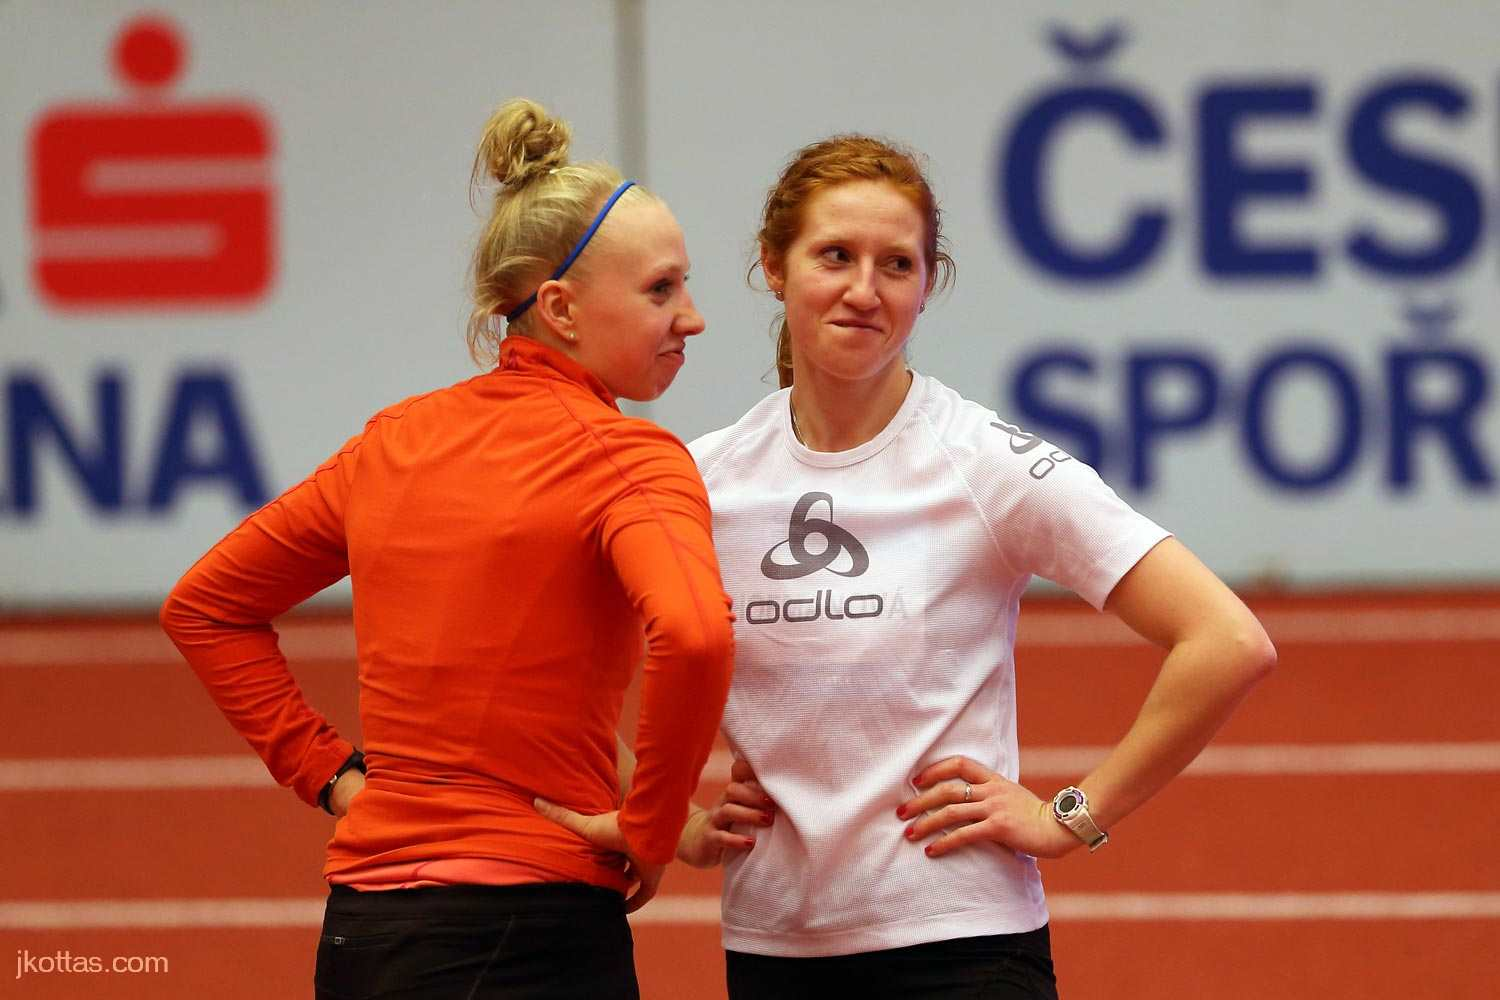 indoor-cz-championship-ostrava-saturday-31